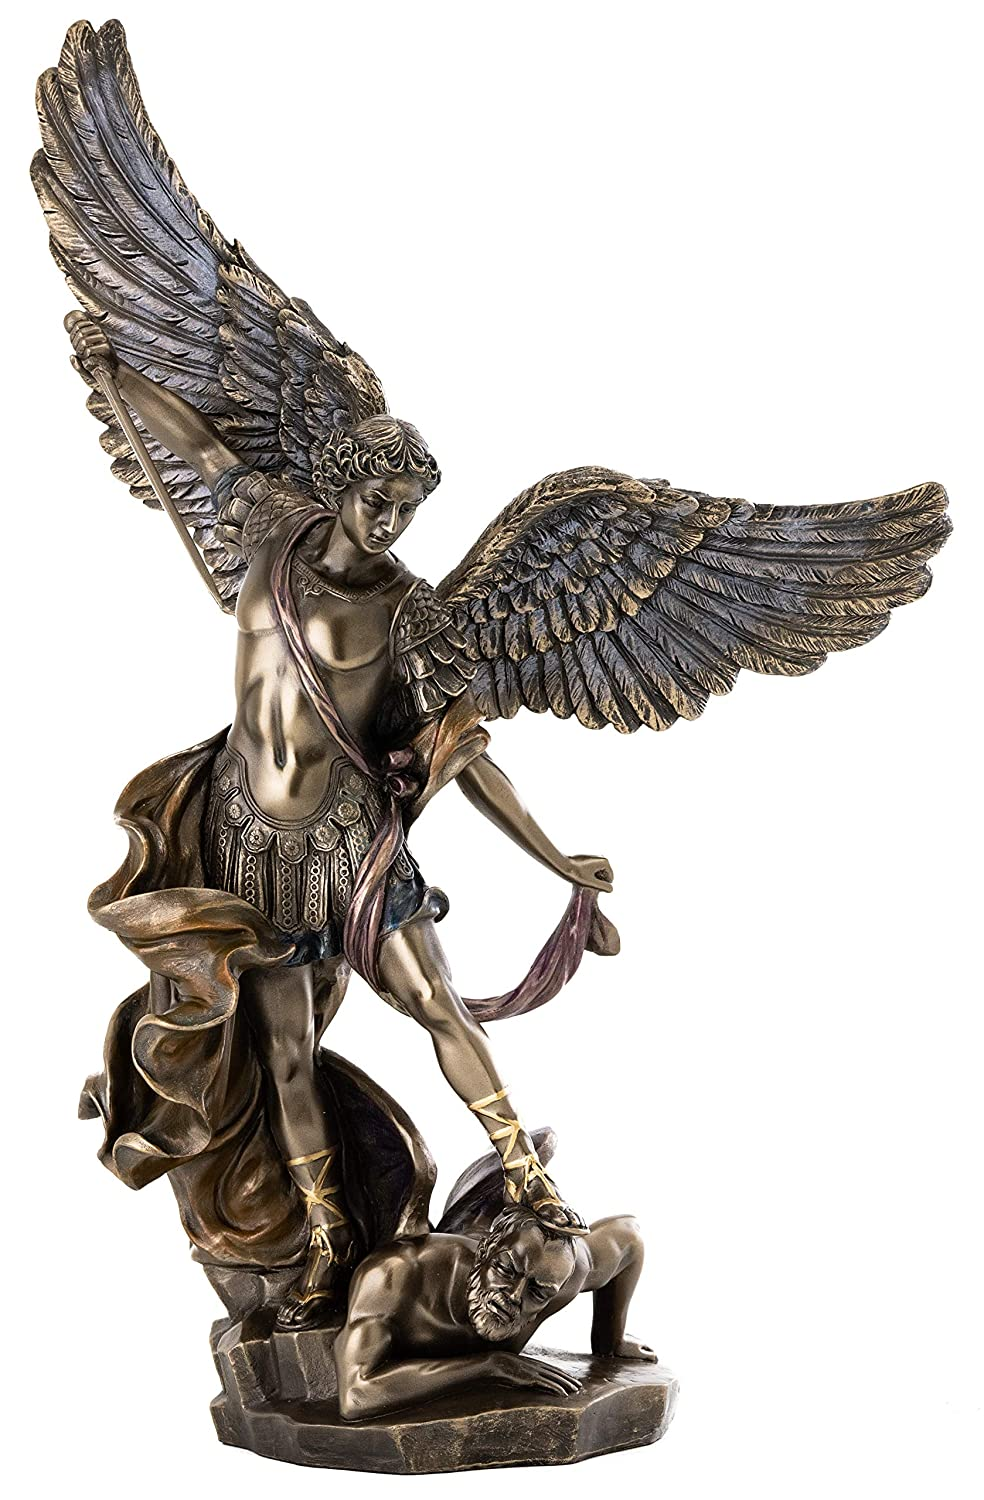 Top Collection Archangel St. Michael Statue Fighting Evil Satan Demon- Saint Miguel Peace and Justice Sculpture Defeating Lucy in Premium Cold Cast Bronze-10.5-Inch Collectible Ancient Roman Figurine